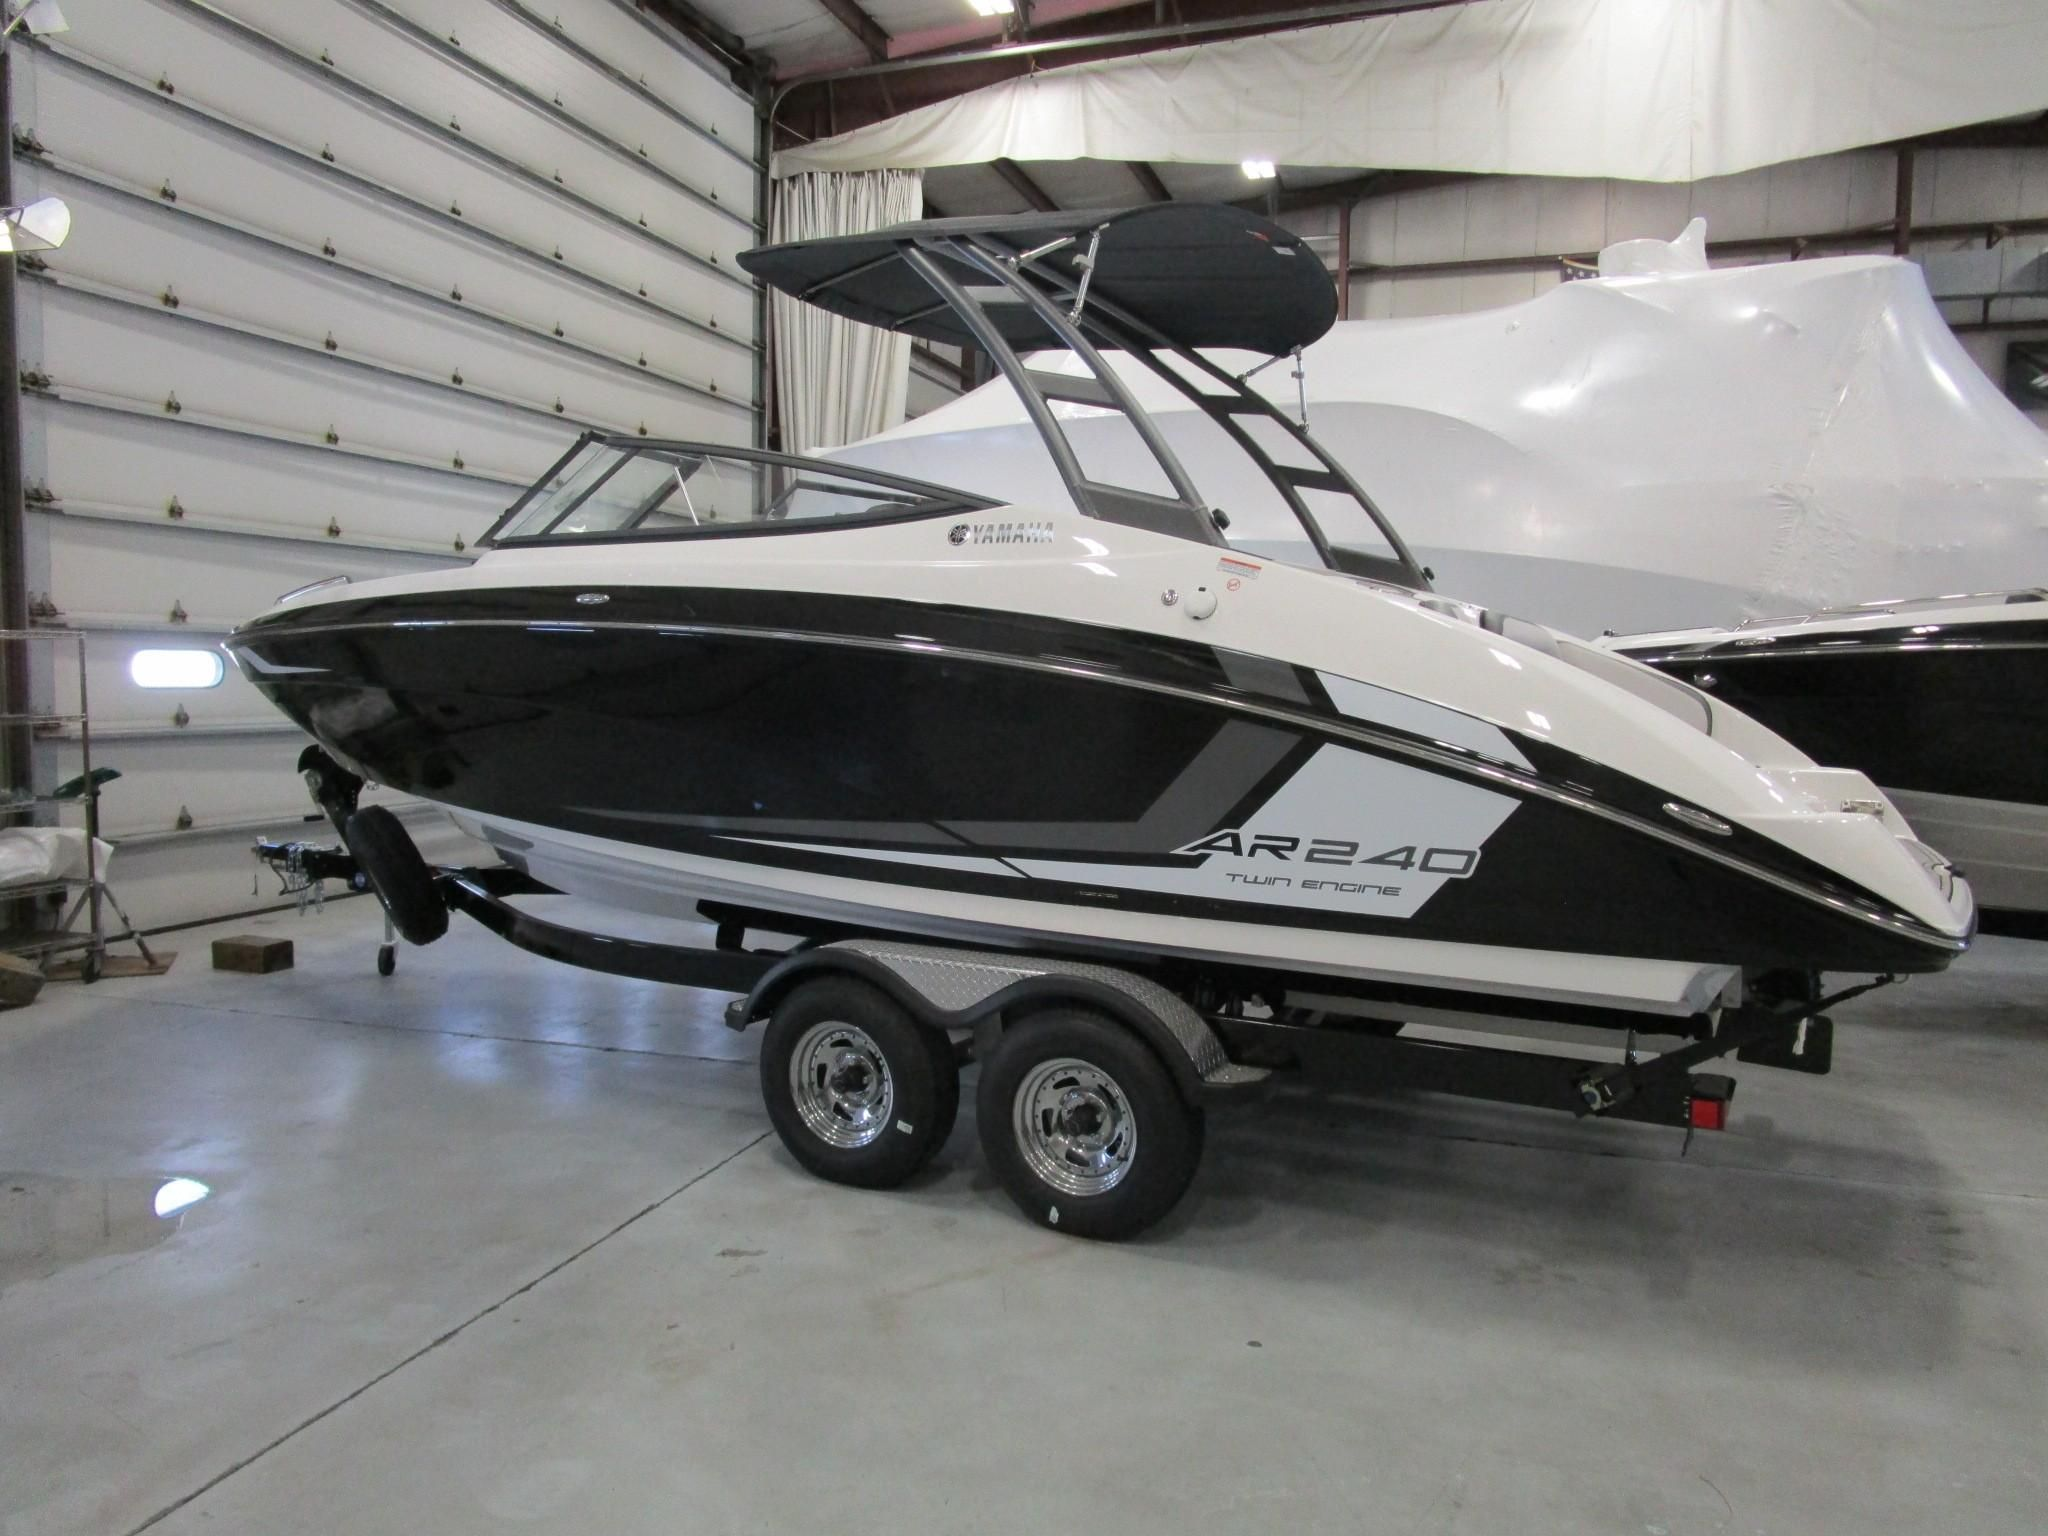 2018 yamaha boats ar 240 power boat for sale www for Boat motors for sale in arkansas